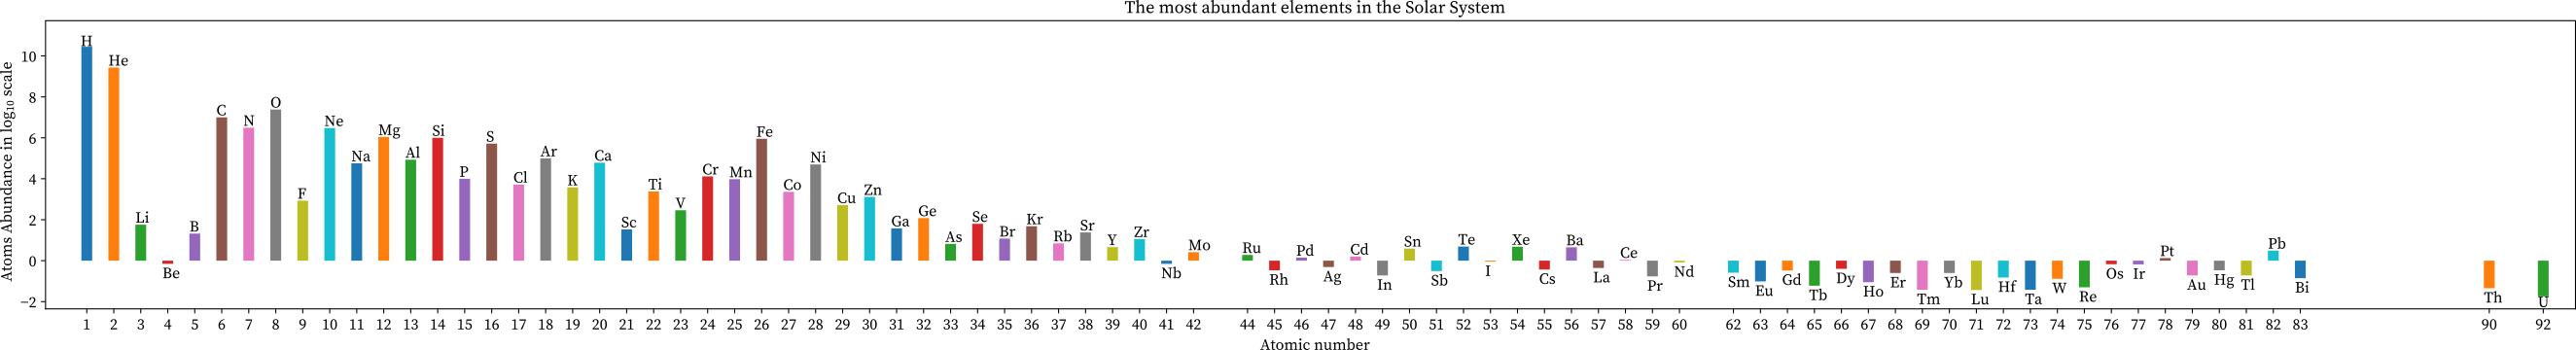 The most abundant elements in the solar system